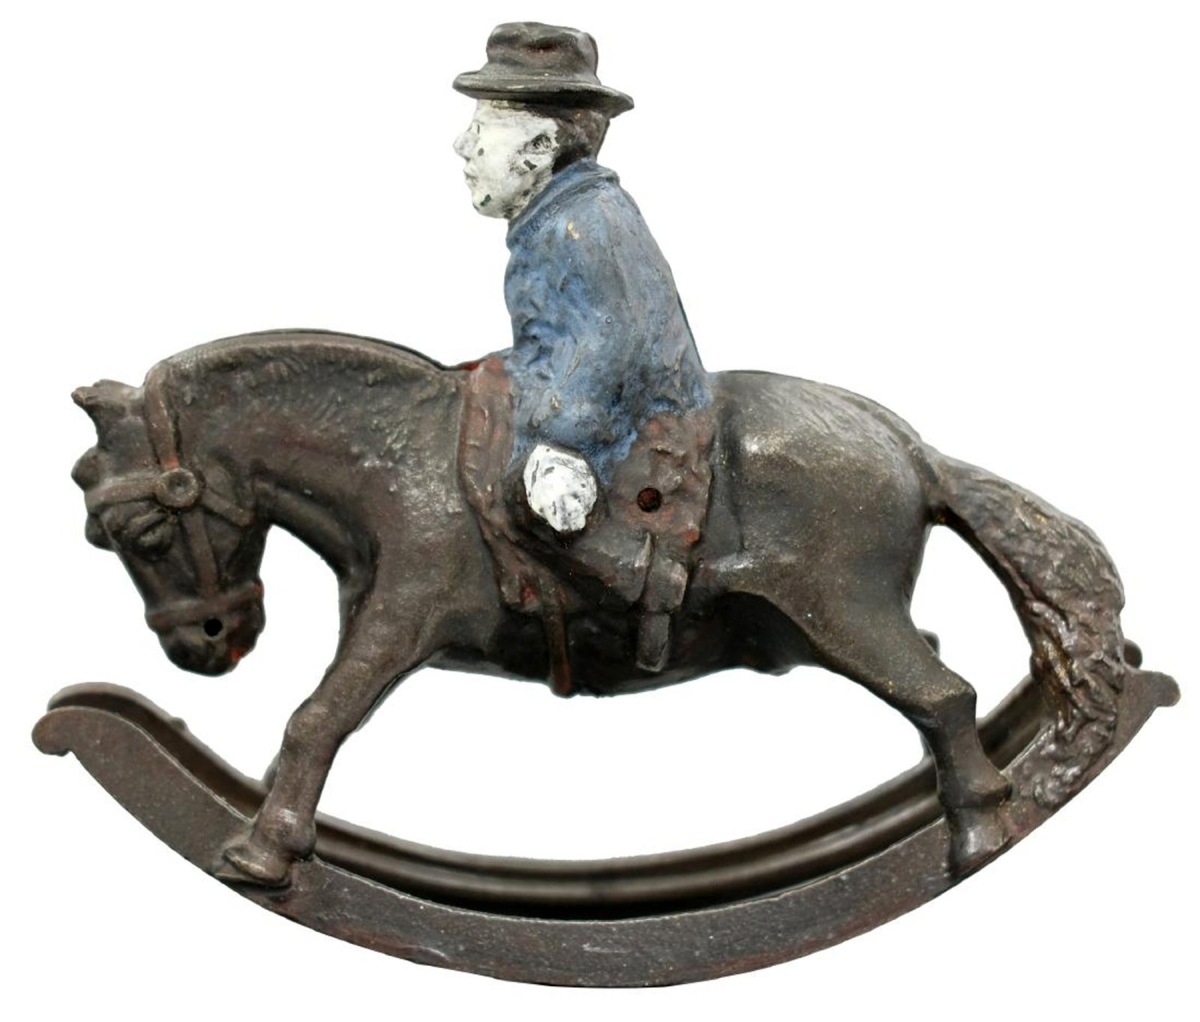 There are only two known Circuit Rider banks, manufacturer unknown, American, circa 1890, cast iron. This one is in pristine condition and sold for just under the high estimate at $24,000. The slot for the coins is in the horse's mane and when the horse rocks it is deposited into the bank.